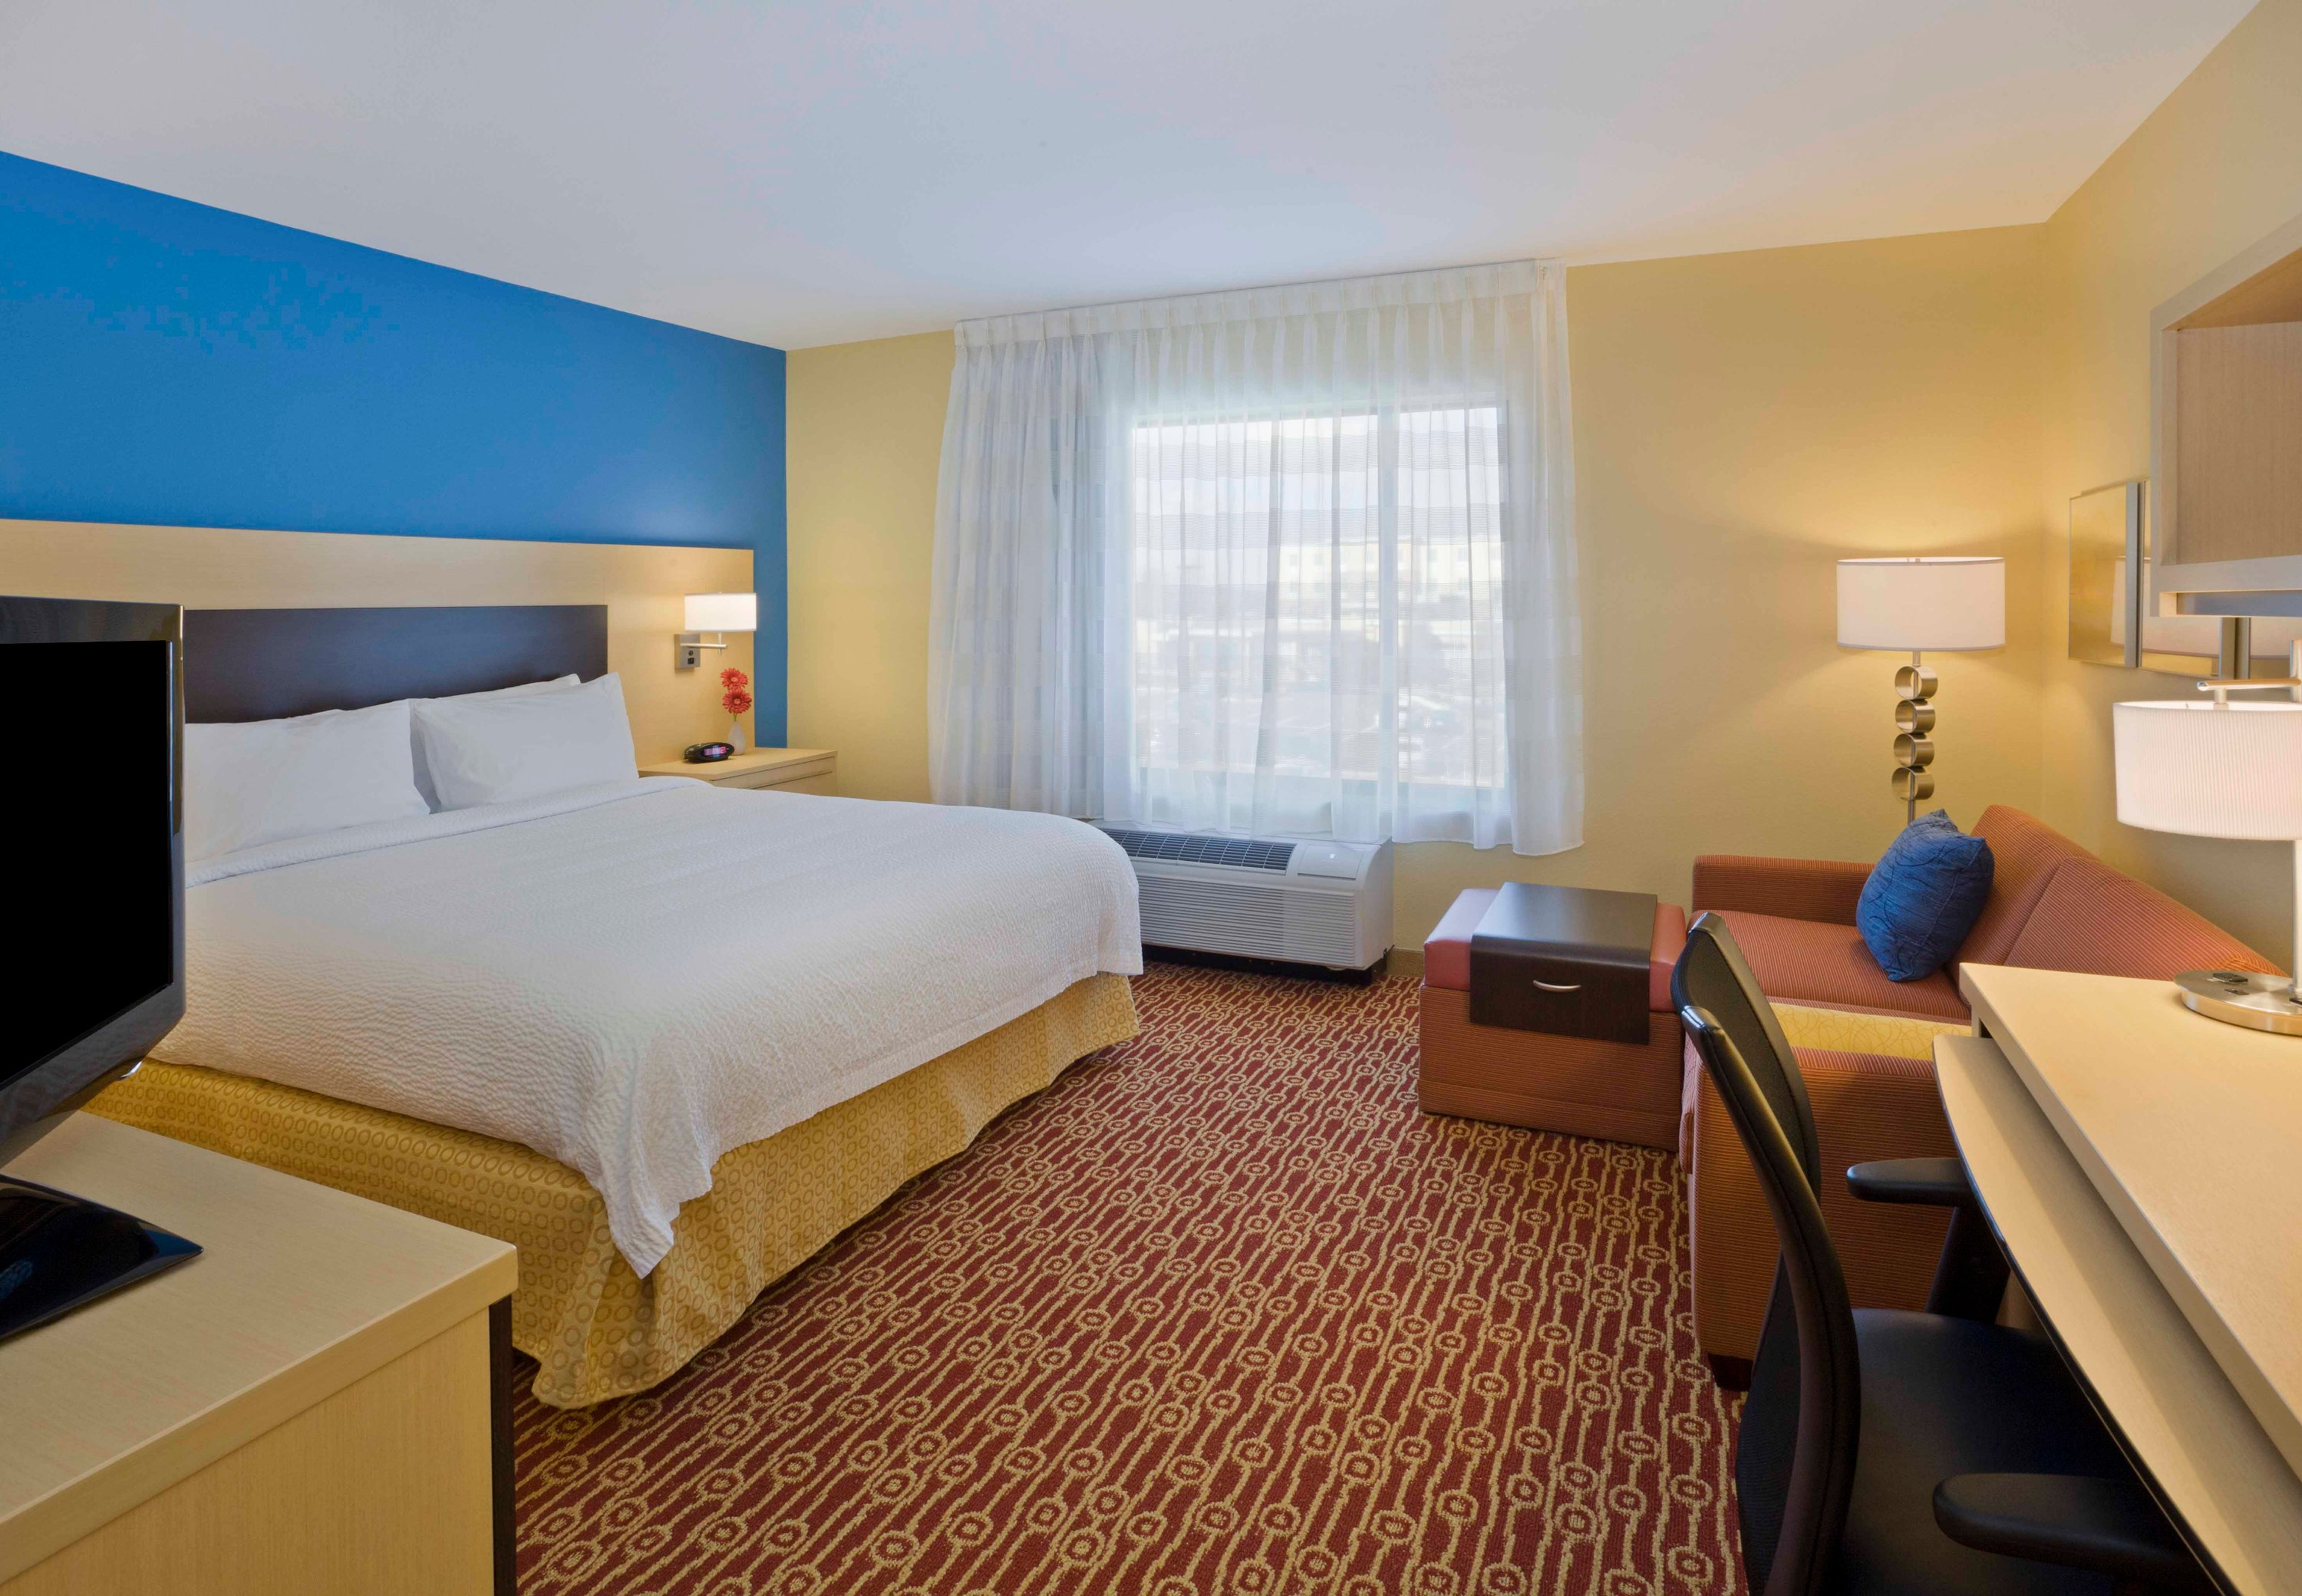 TownePlace Suites by Marriott Ann Arbor image 6